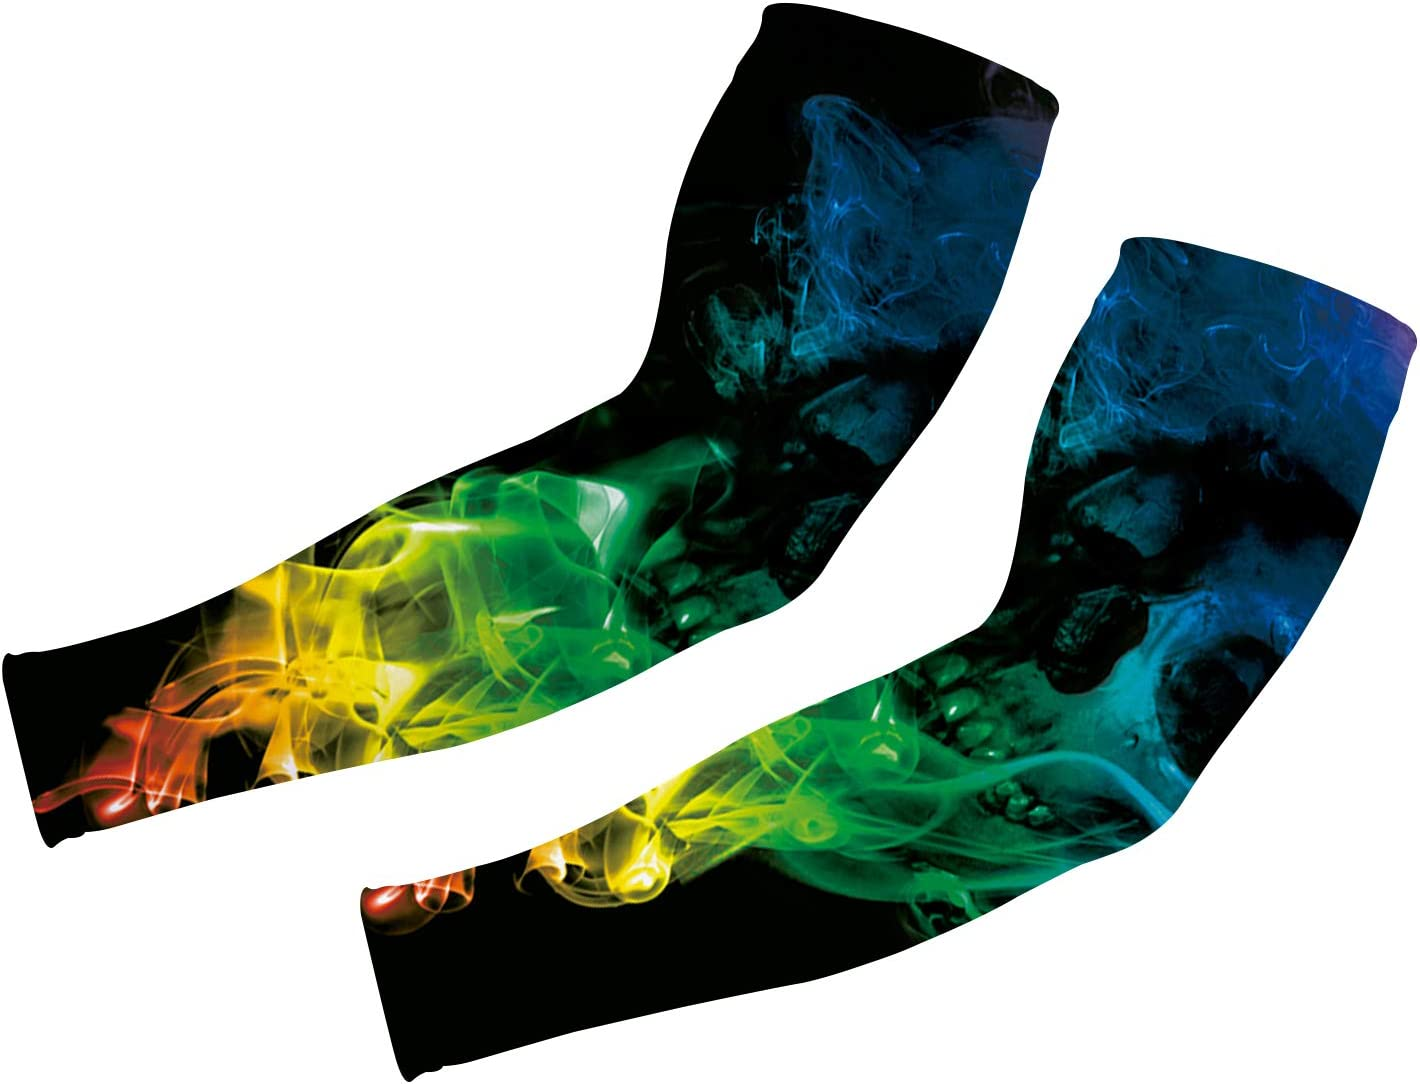 Uideazone UV Protection Cooling Arm Sleeves 1 Pair Sports Compression Sleeves for Cycling, Running, Basketball, Football & Outdoor Activities